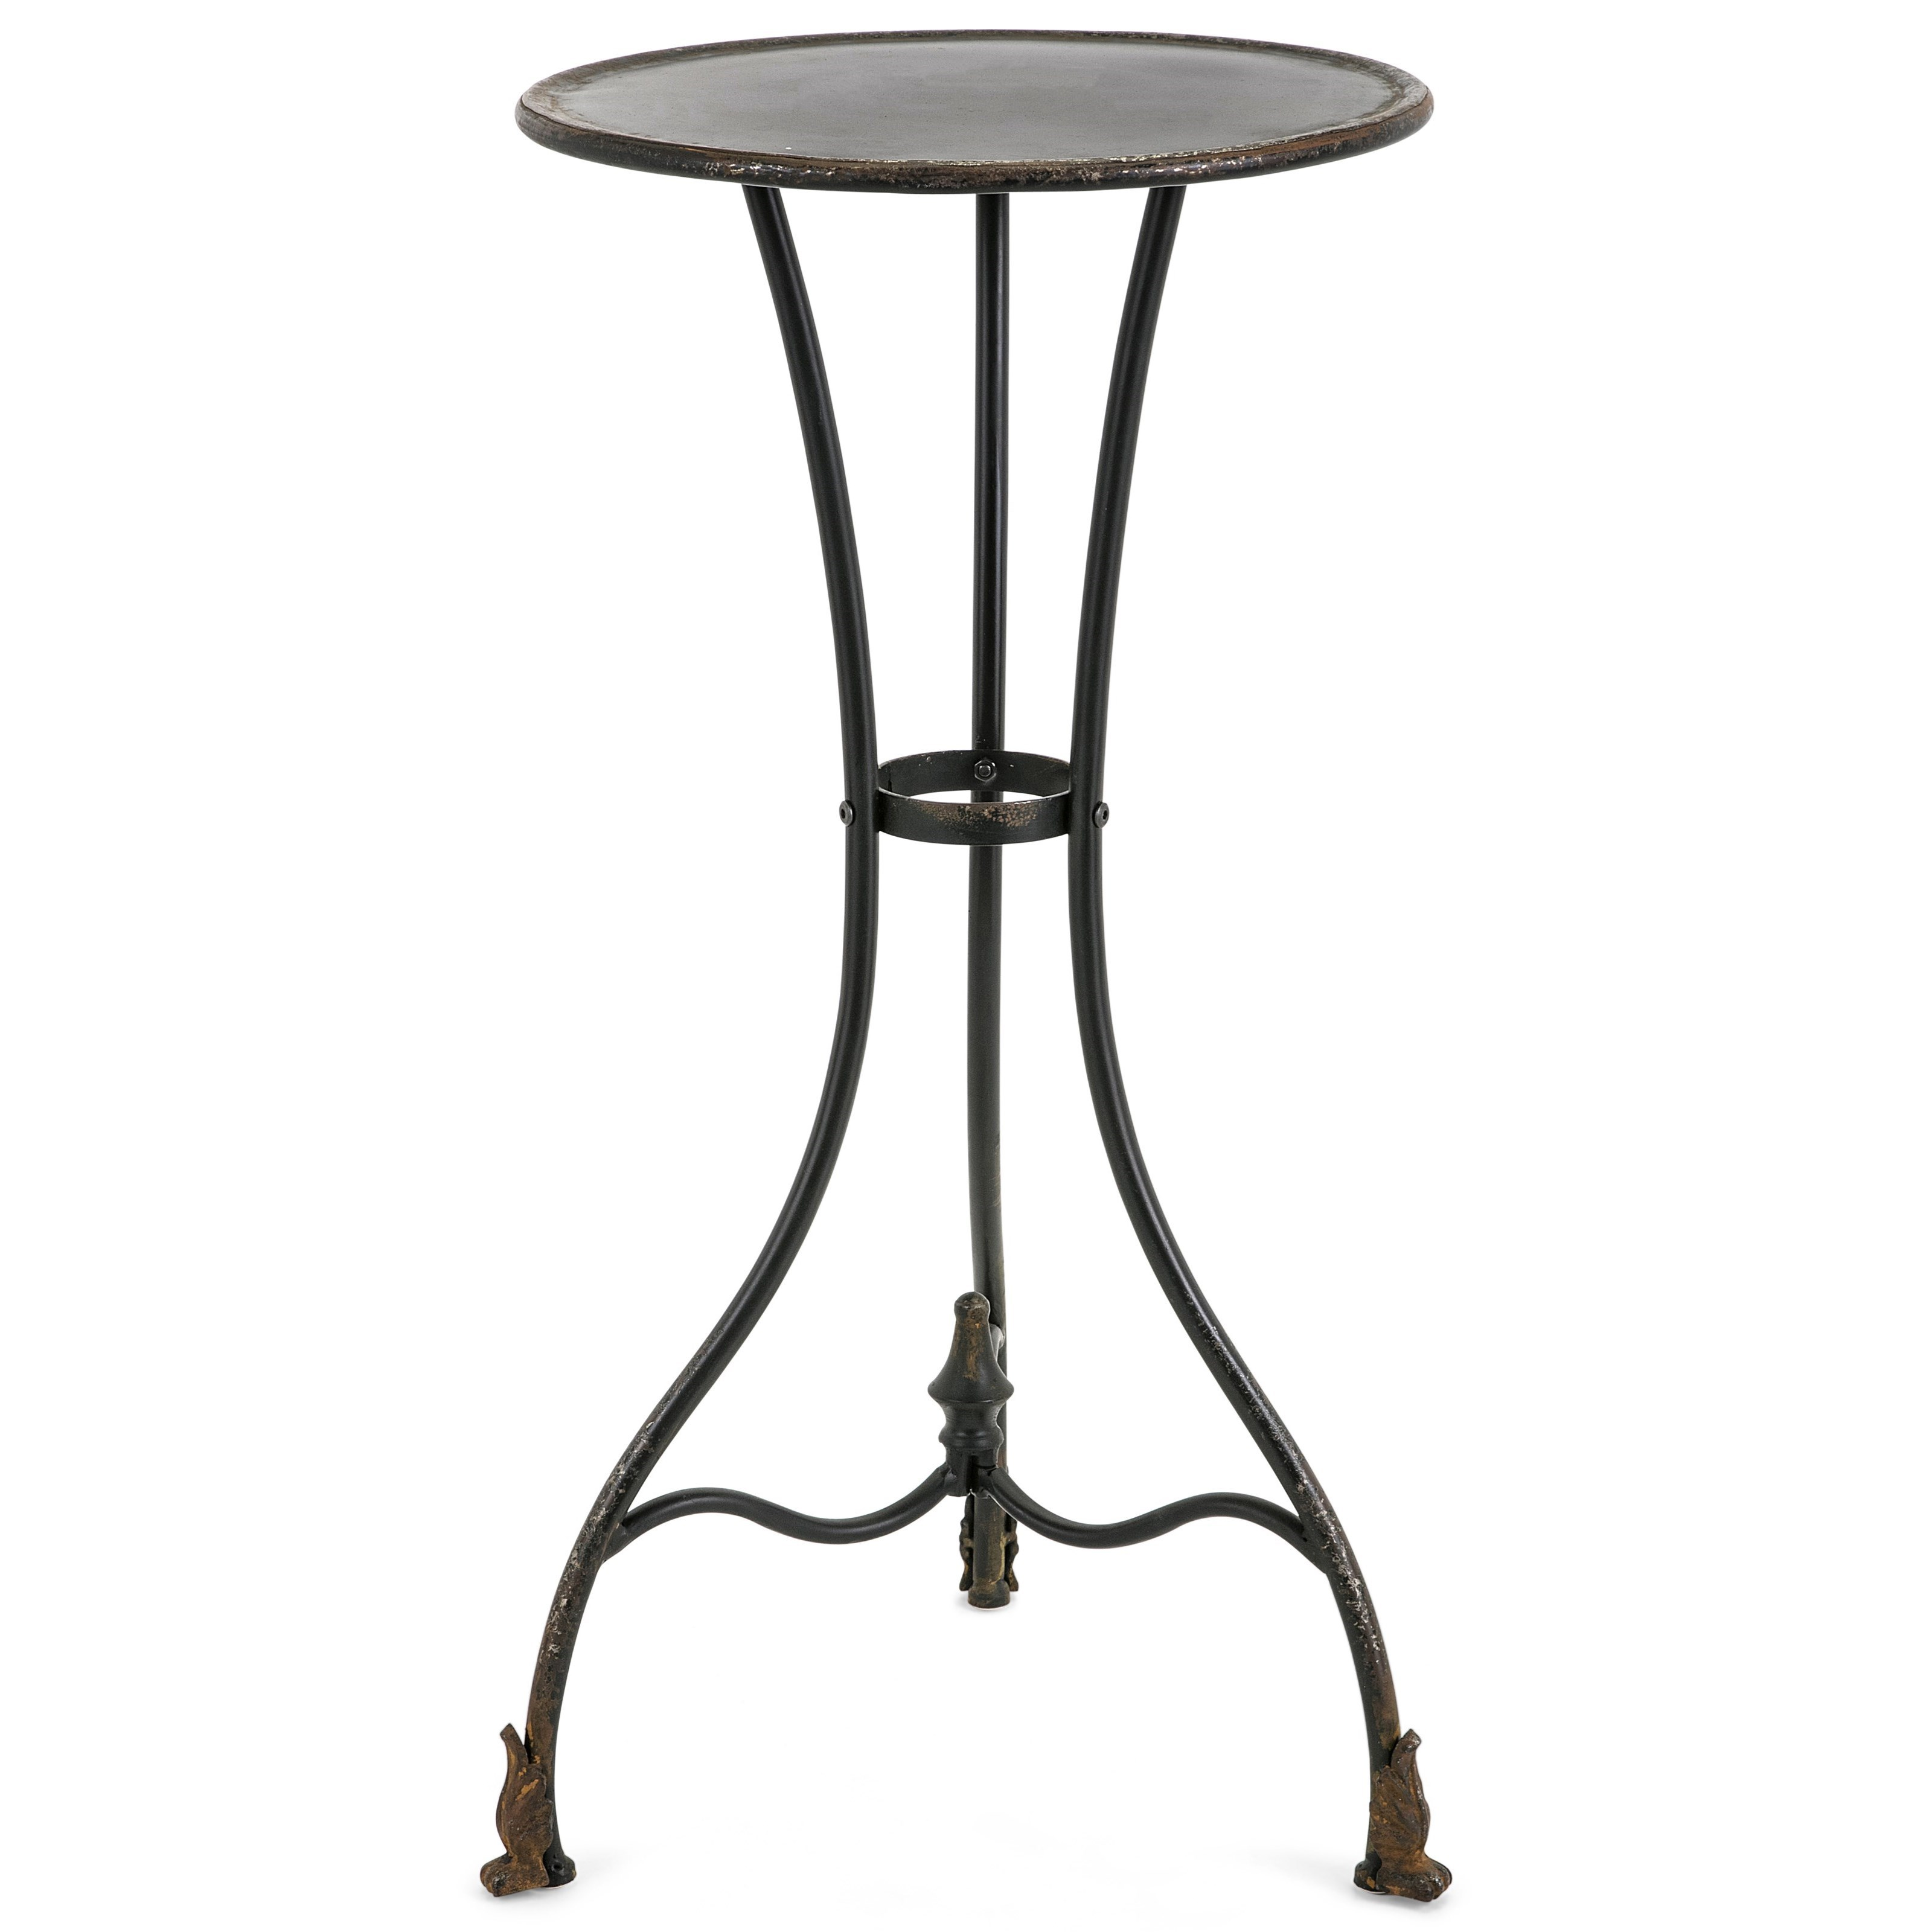 Accent Tables and Cabinets Cliffton Large Metal Accent Table by IMAX Worldwide Home at Alison Craig Home Furnishings